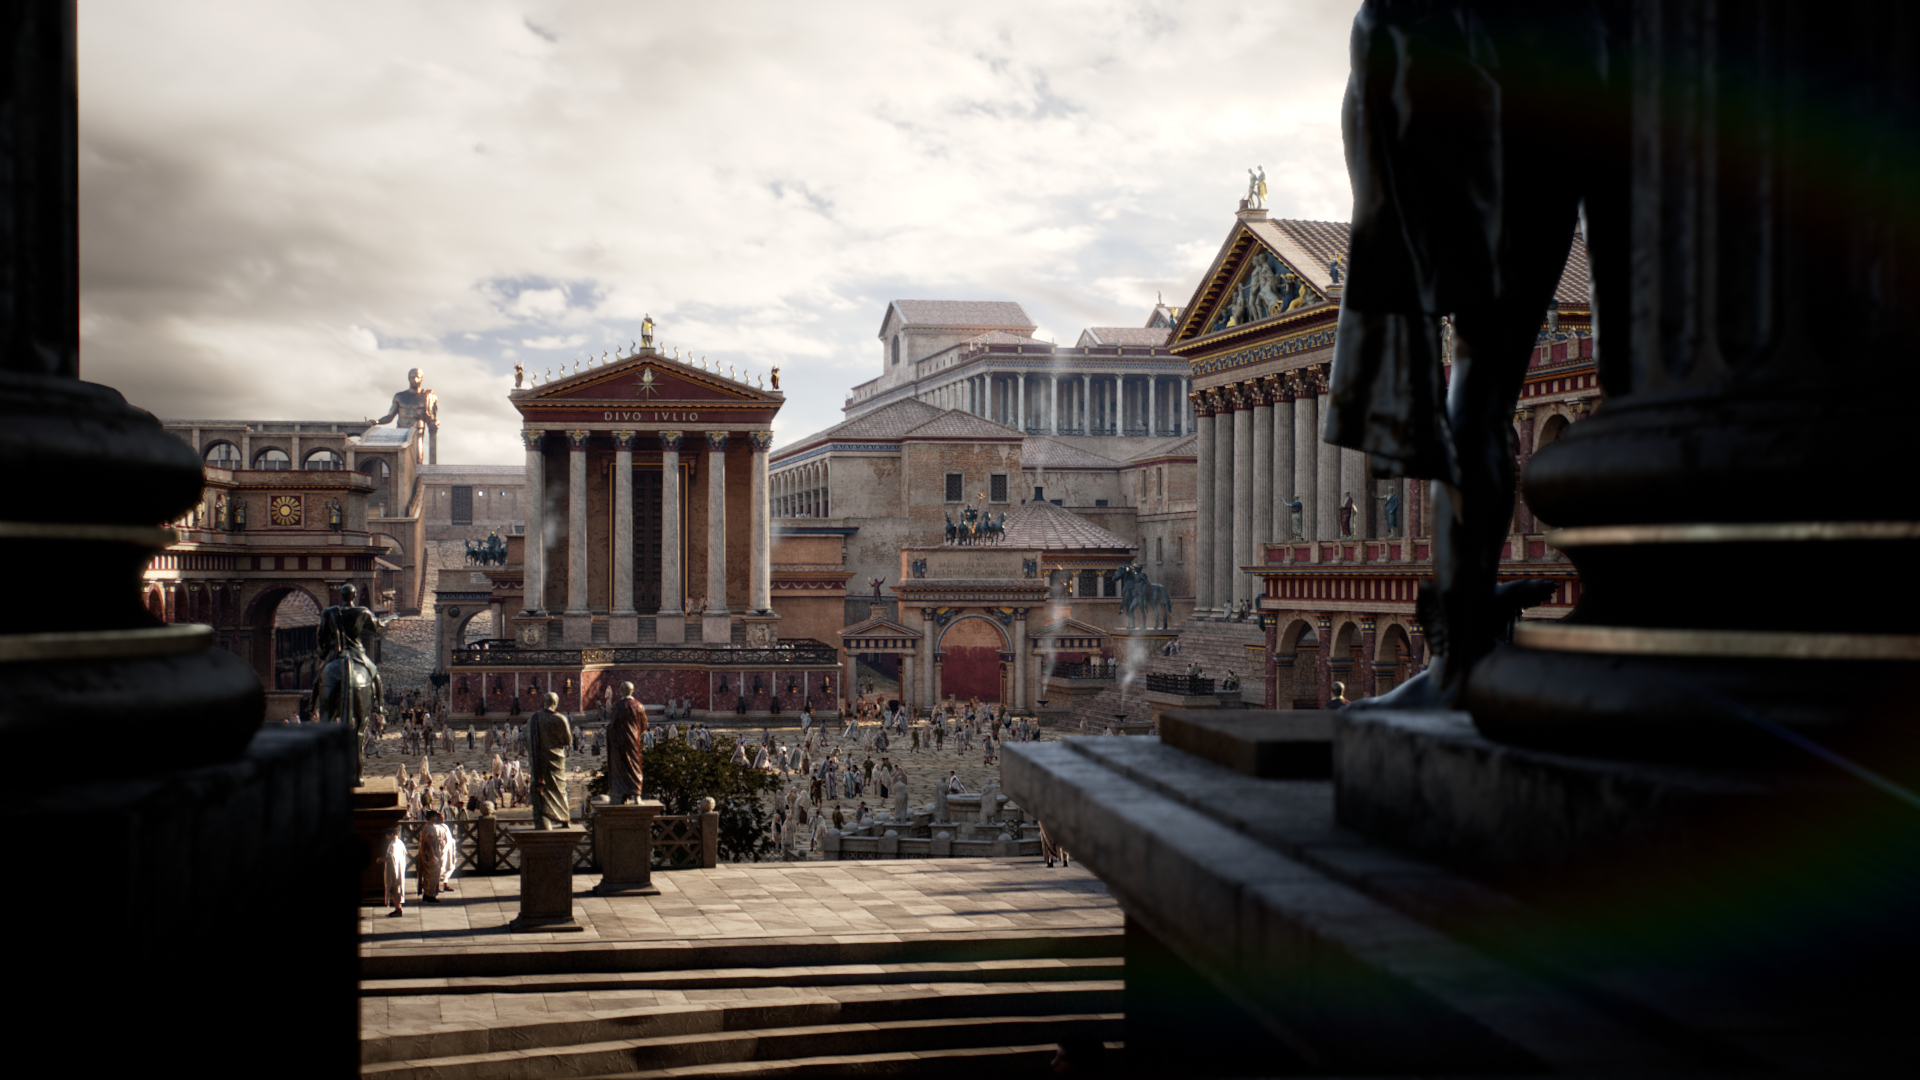 Rome rebuilt in just 1 year…